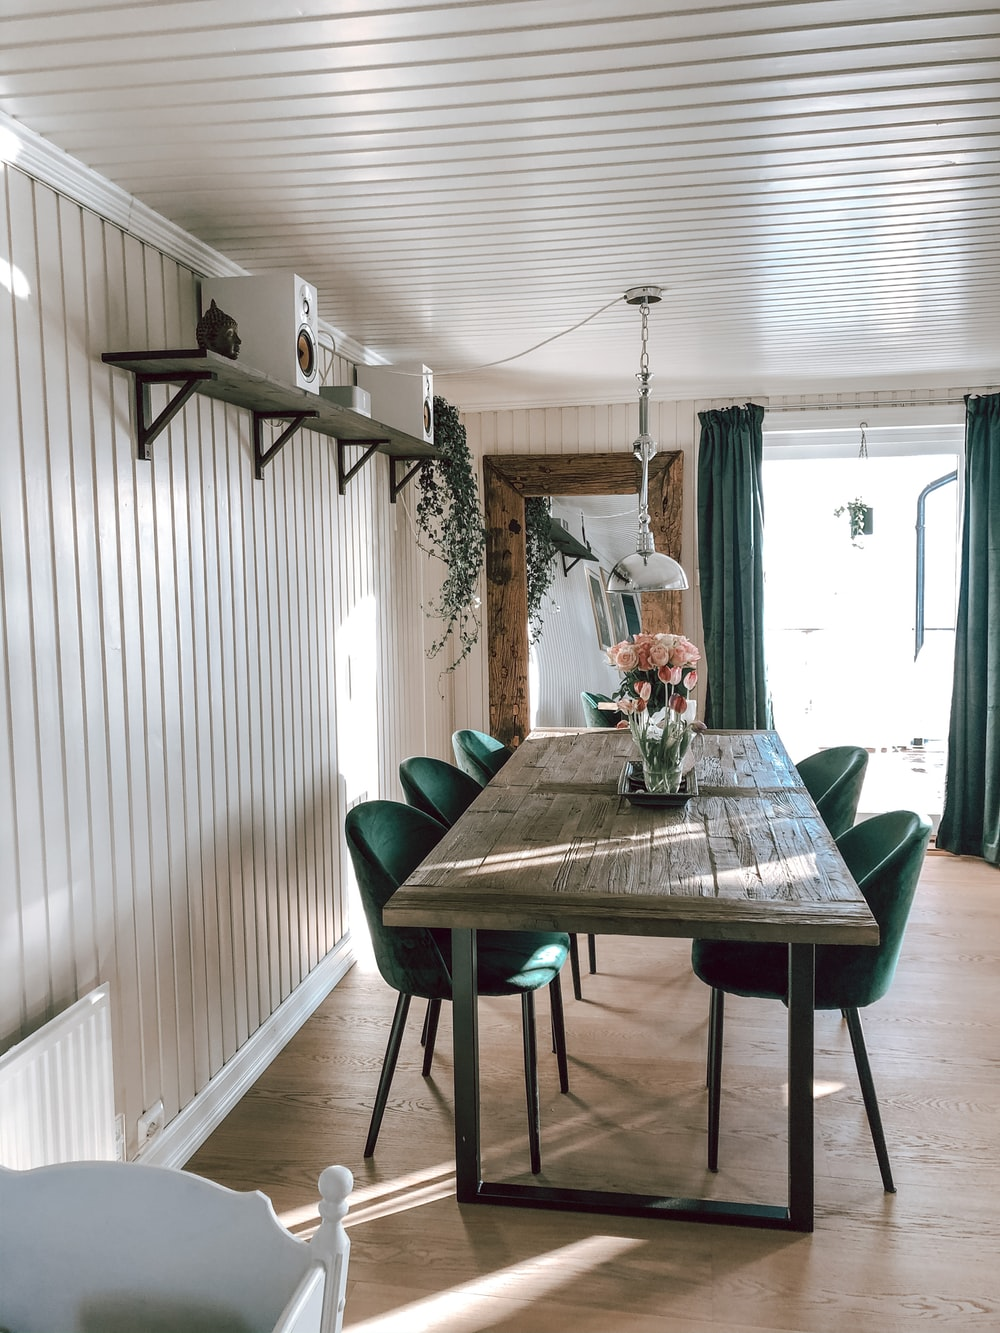 white and black dining table with chairs